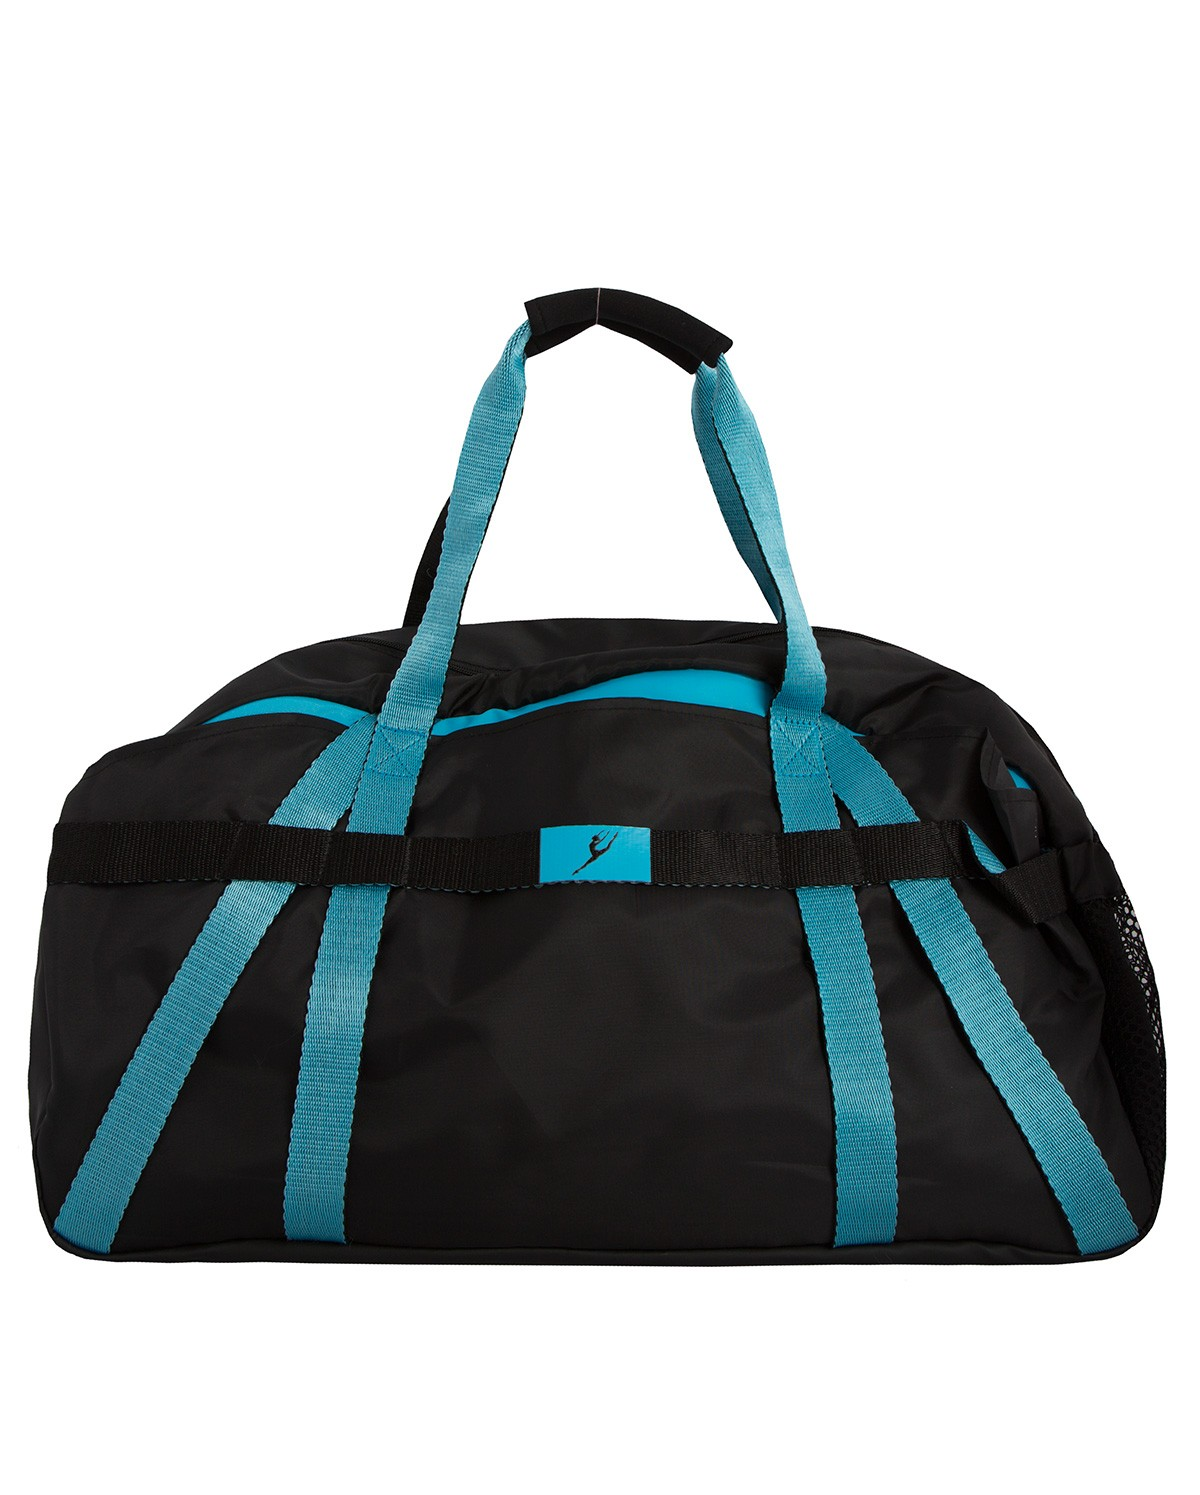 Energetiks Large Dance Duffle Bag - NEW